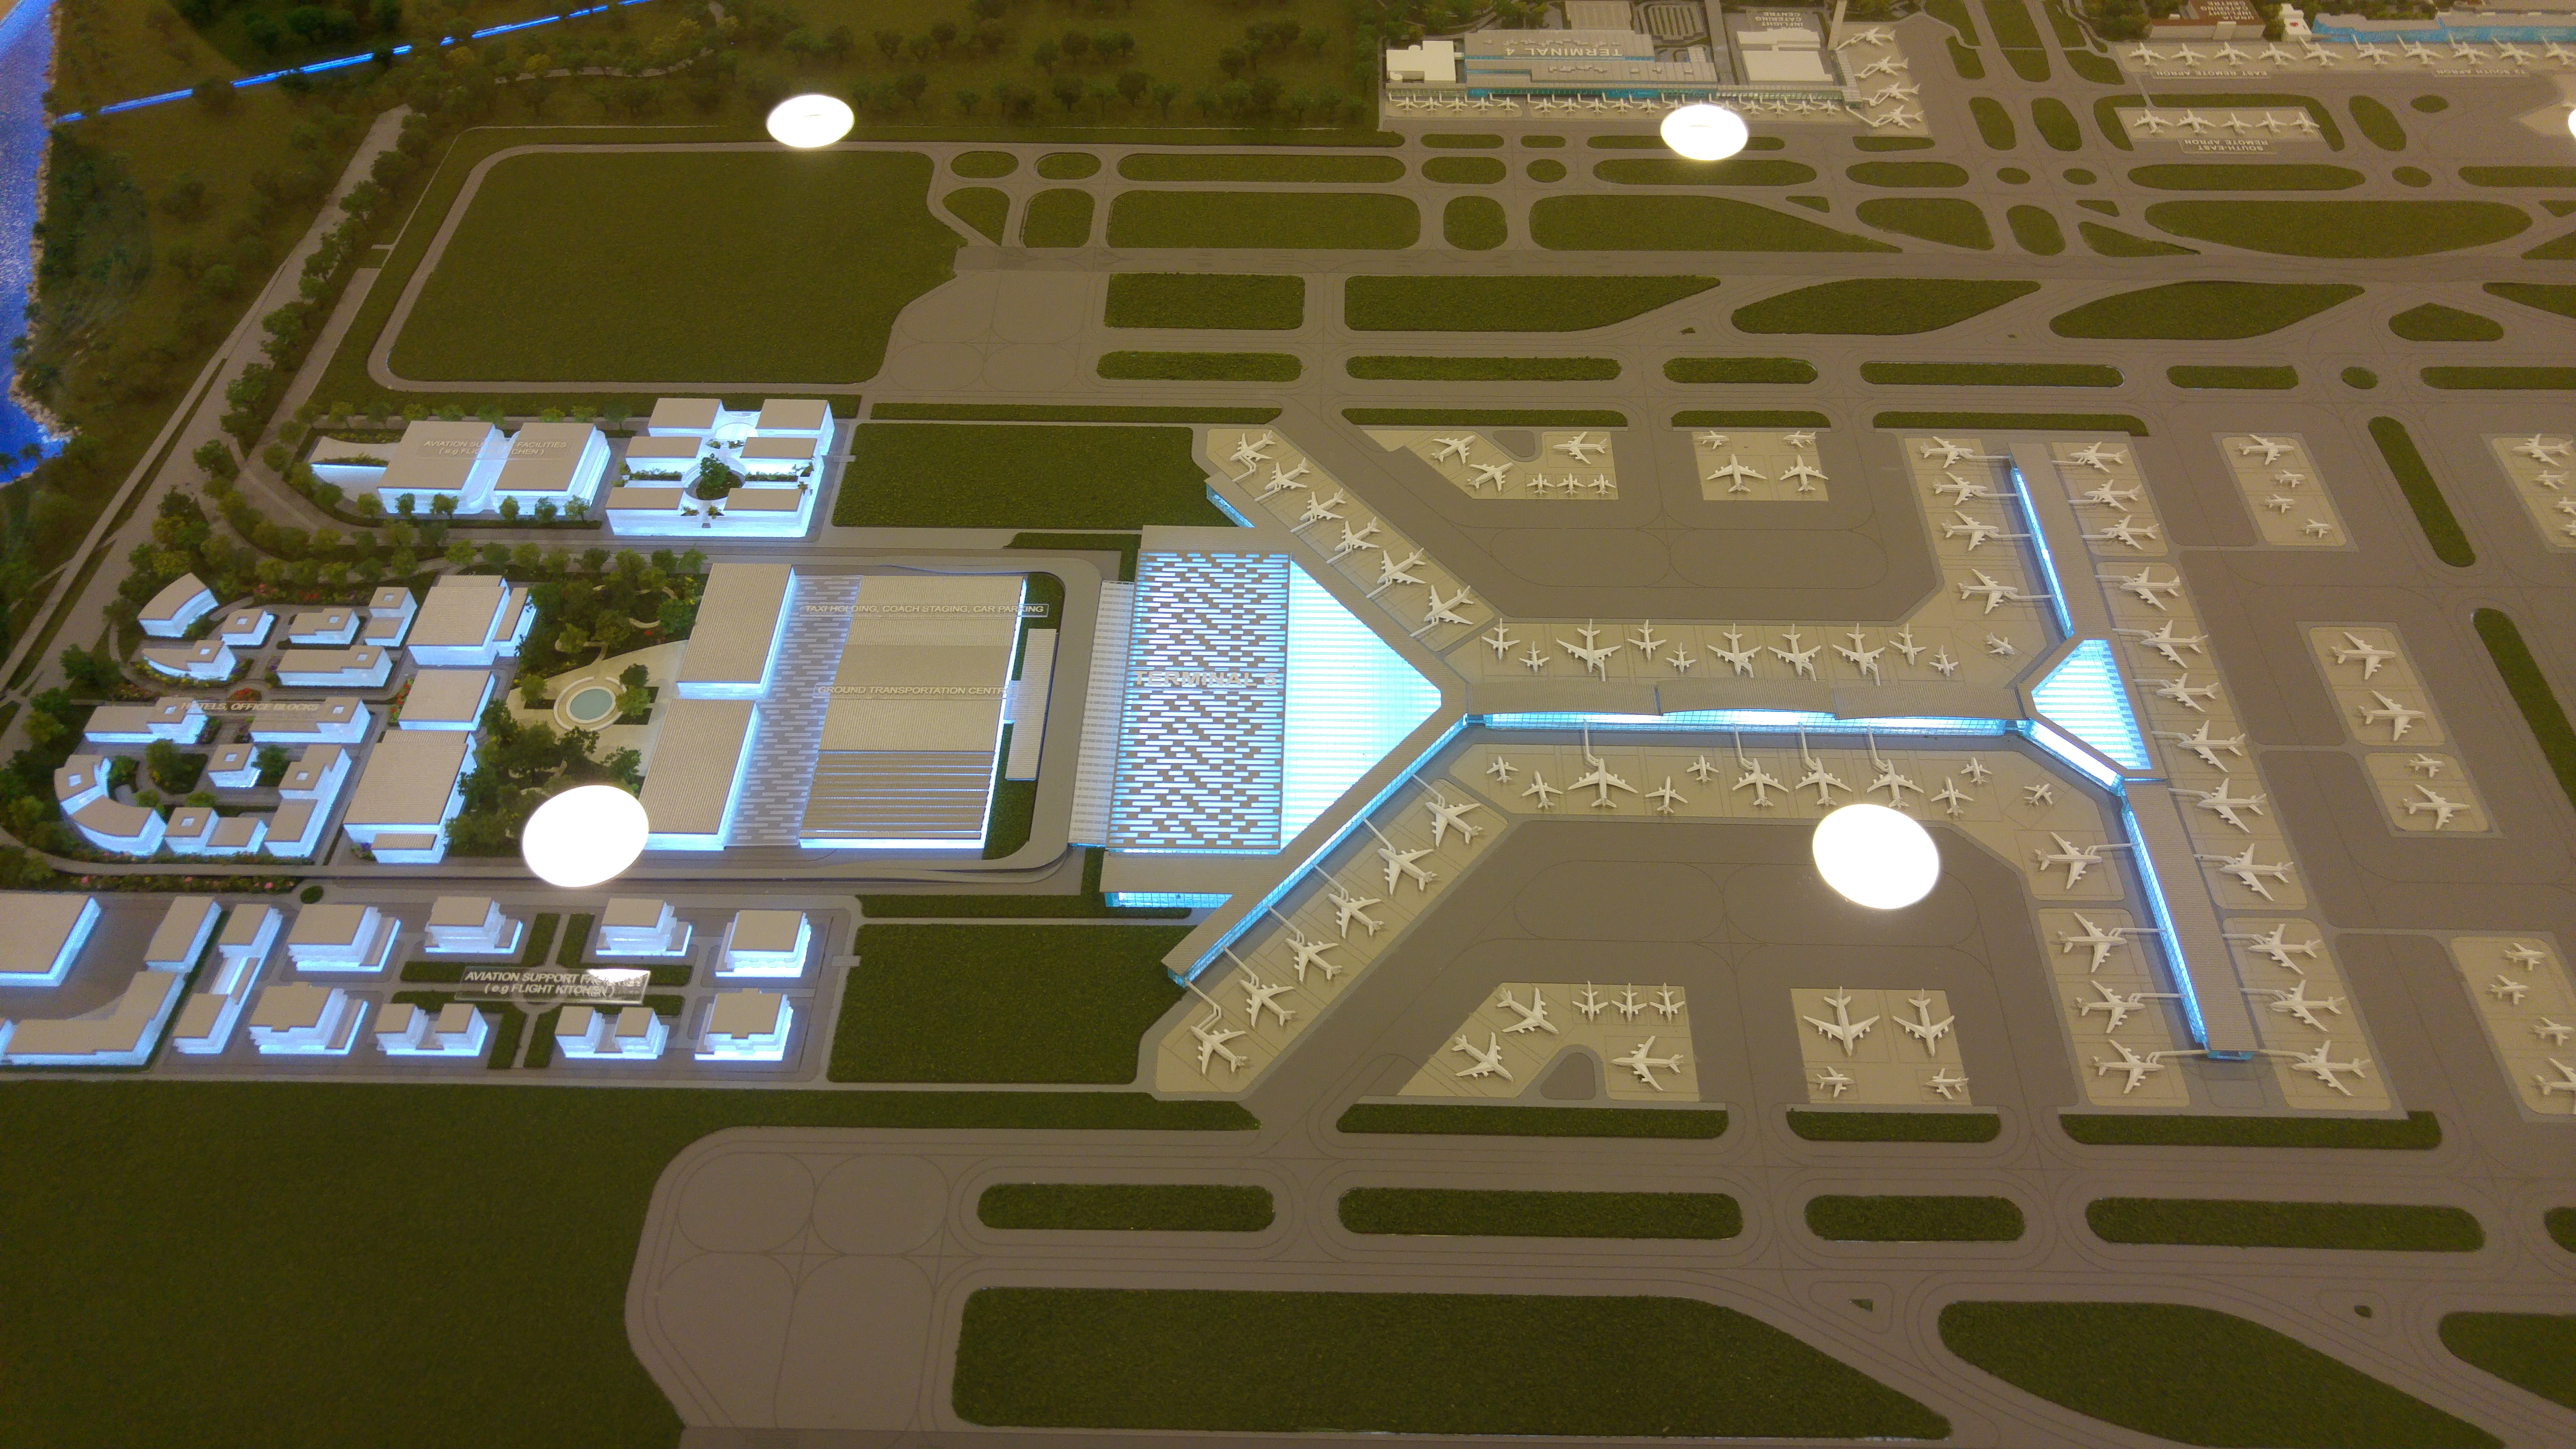 Changi airport t5 basic infrastructure design guide for Industrial design consultancy ltd